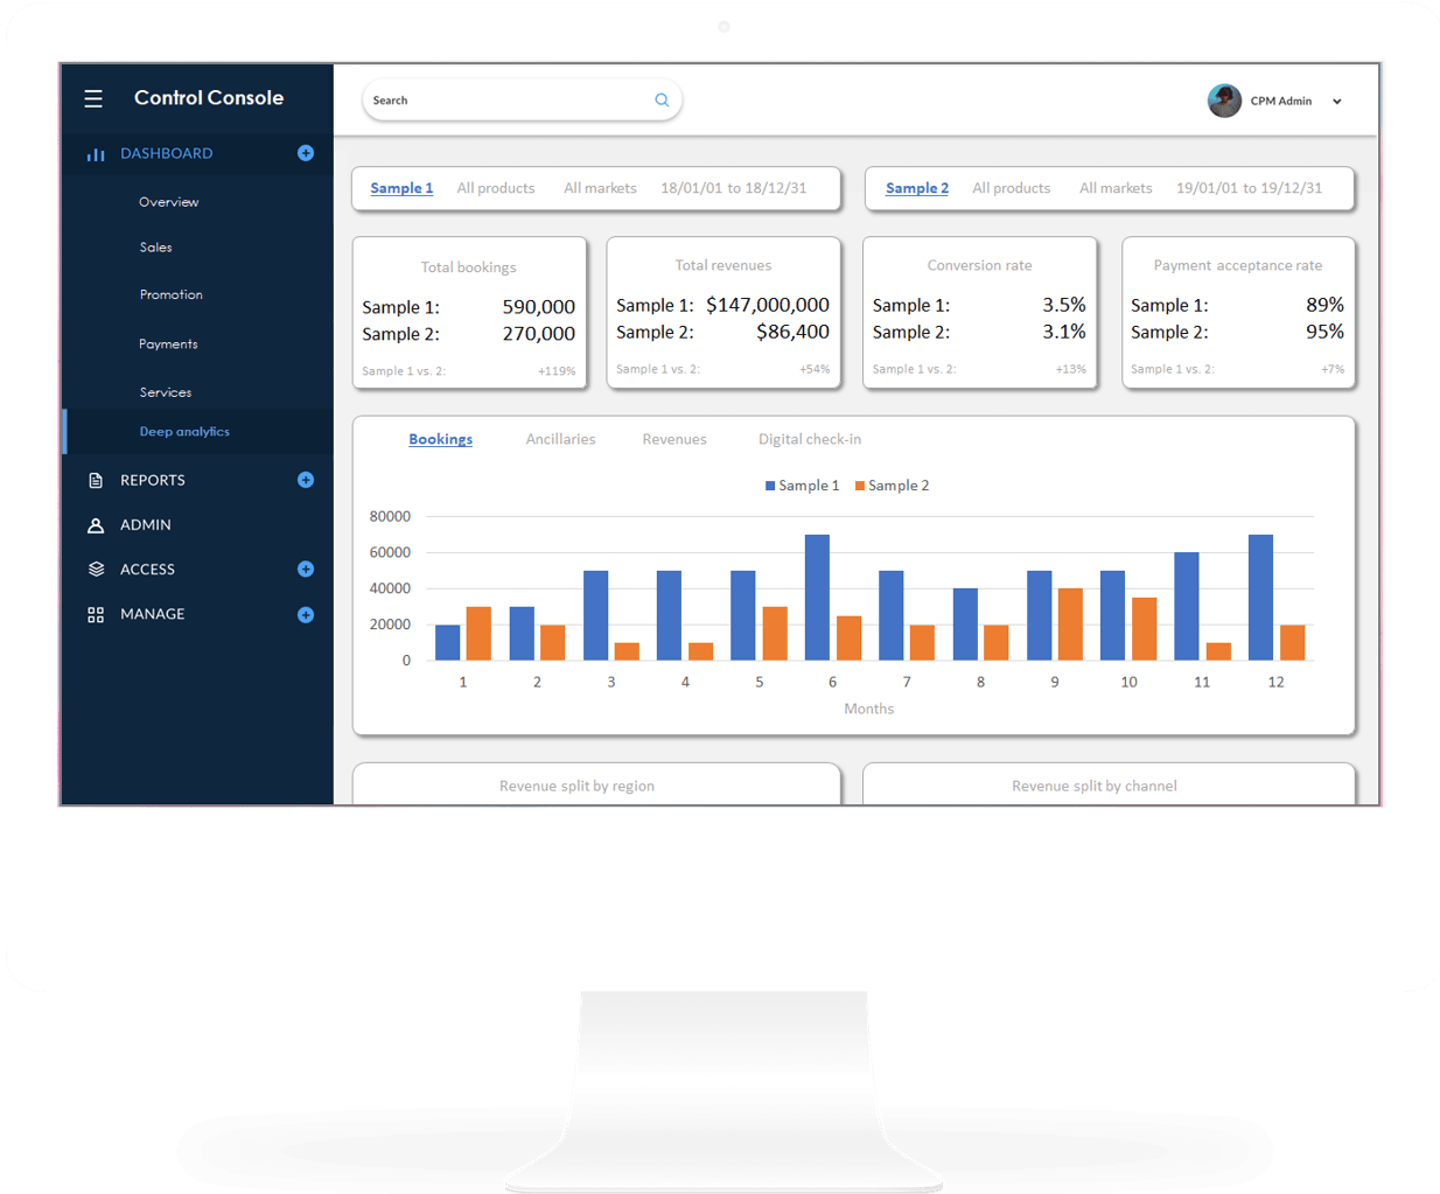 Voyage deep analytics dashboard to analyse data over 2 years